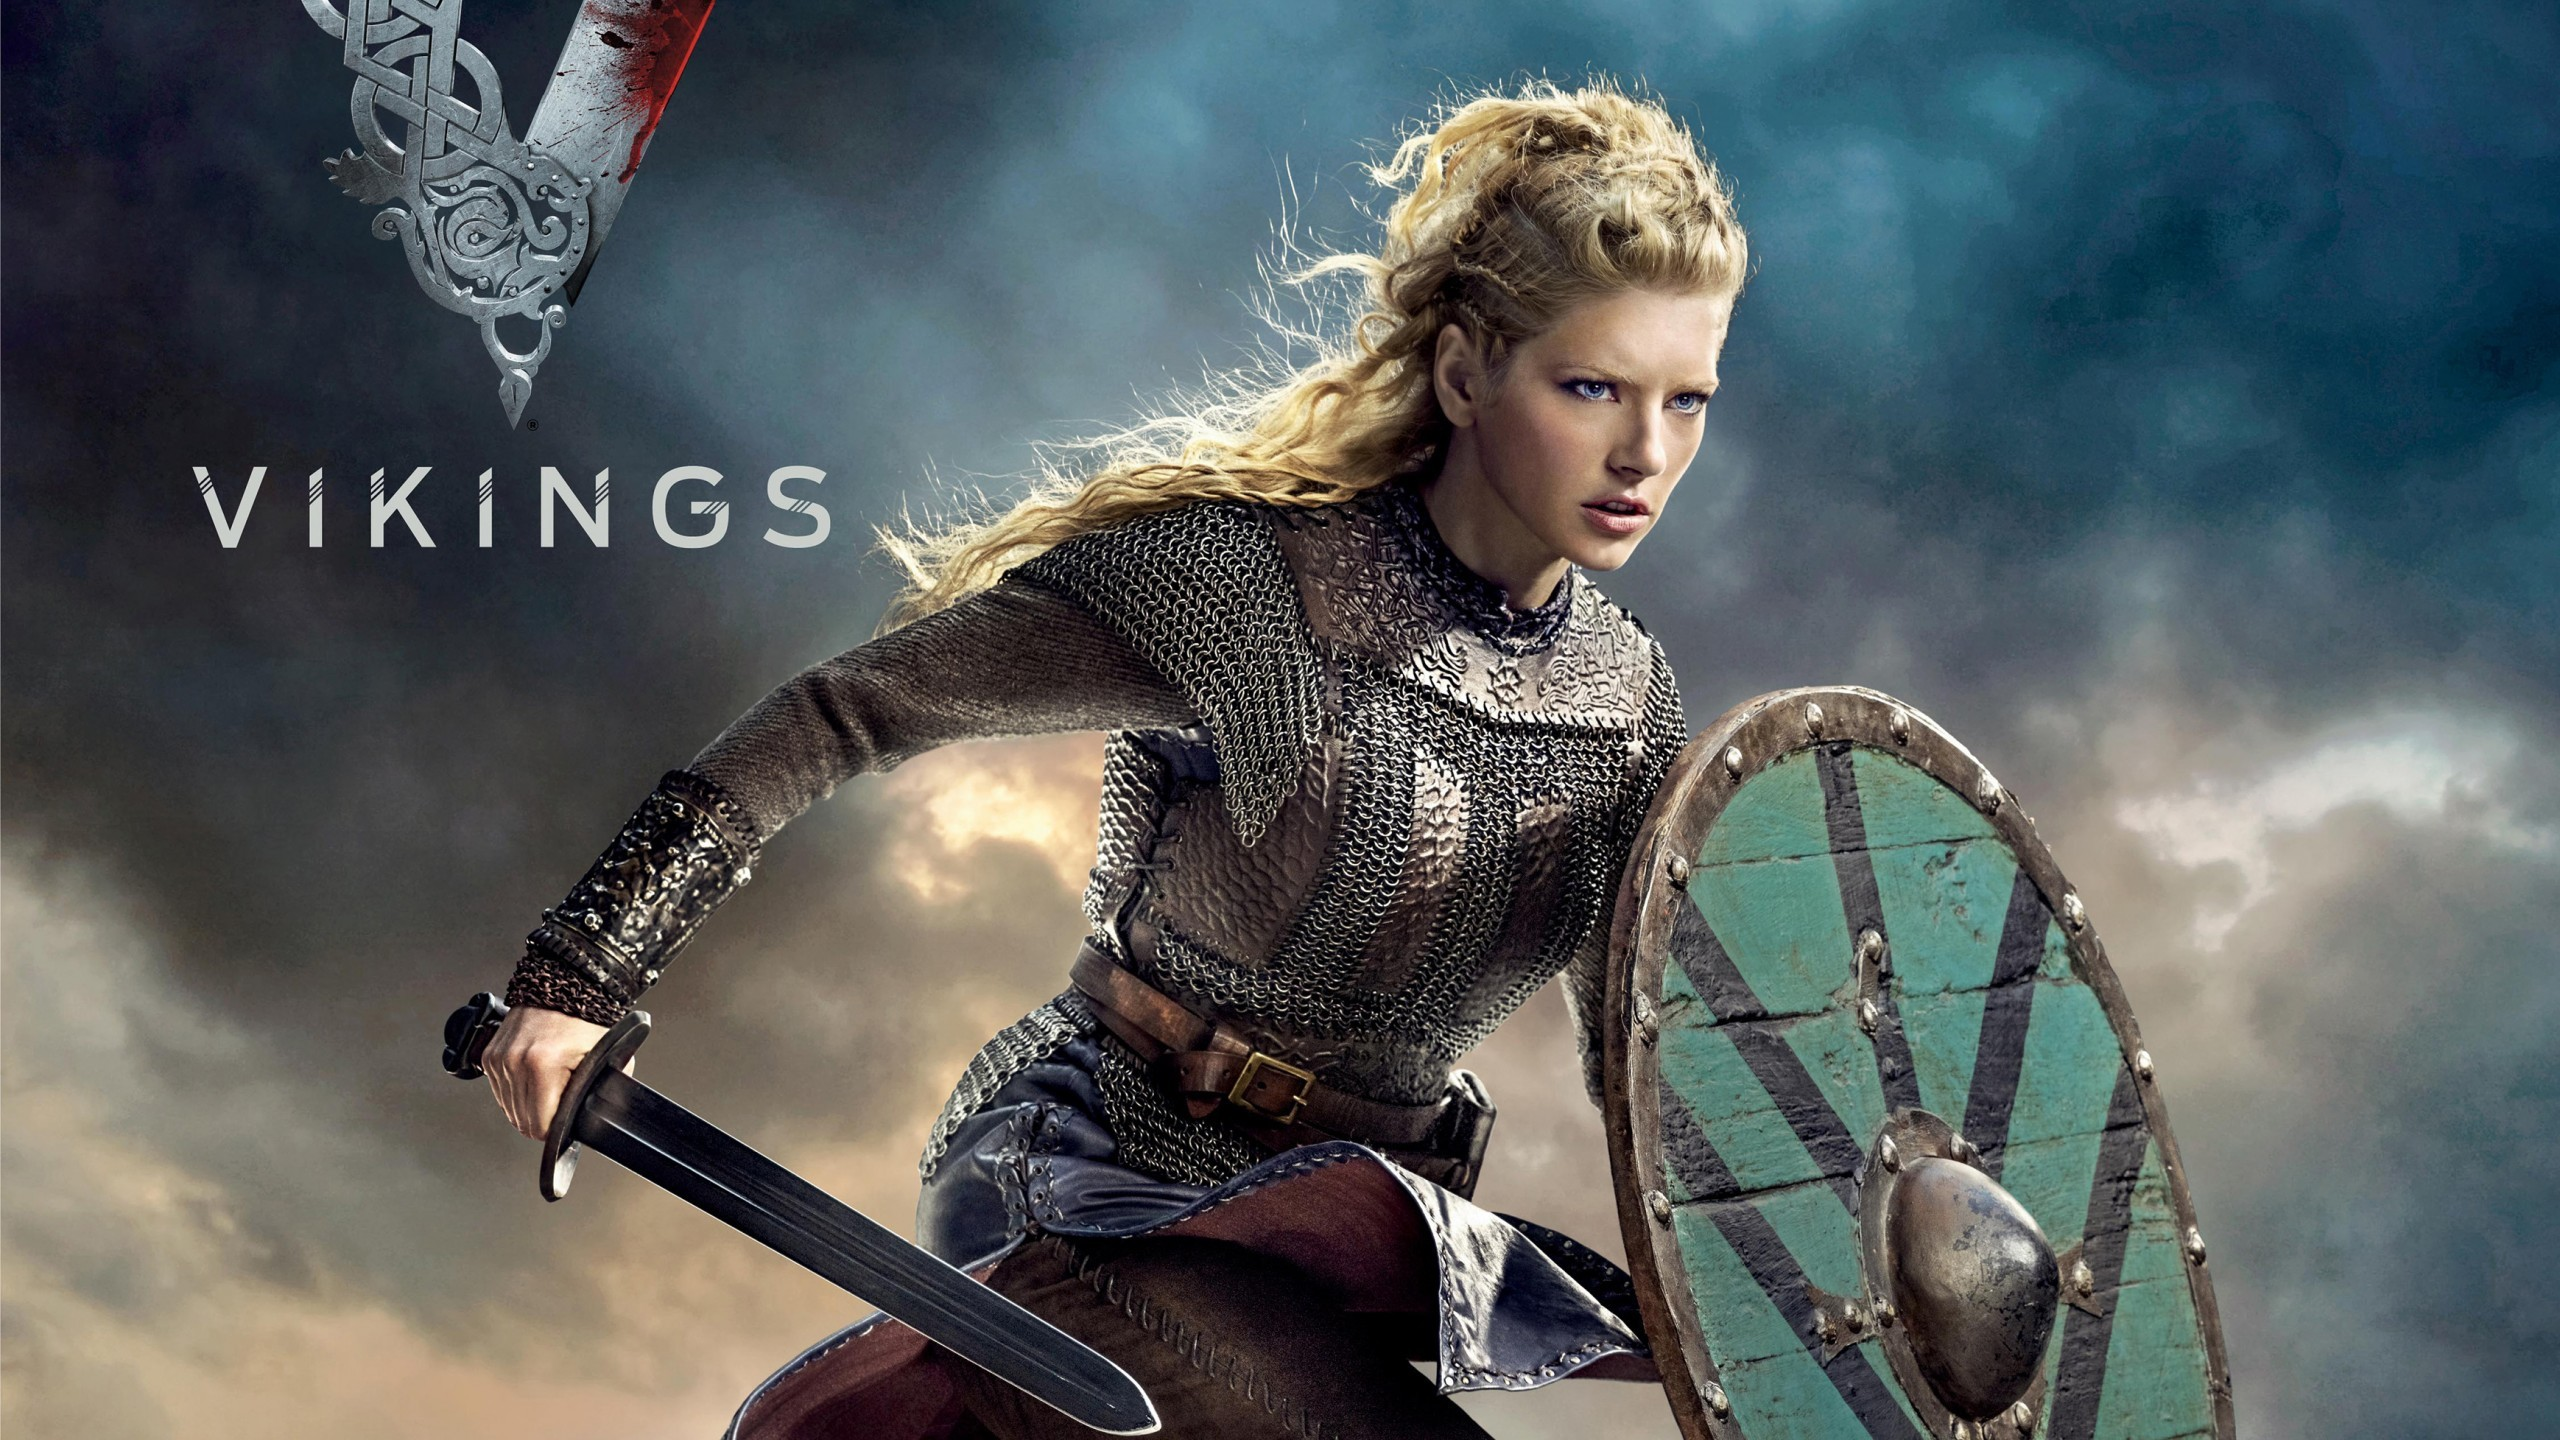 Hd viking wallpaper 69 images - Tv series wallpaper 4k ...